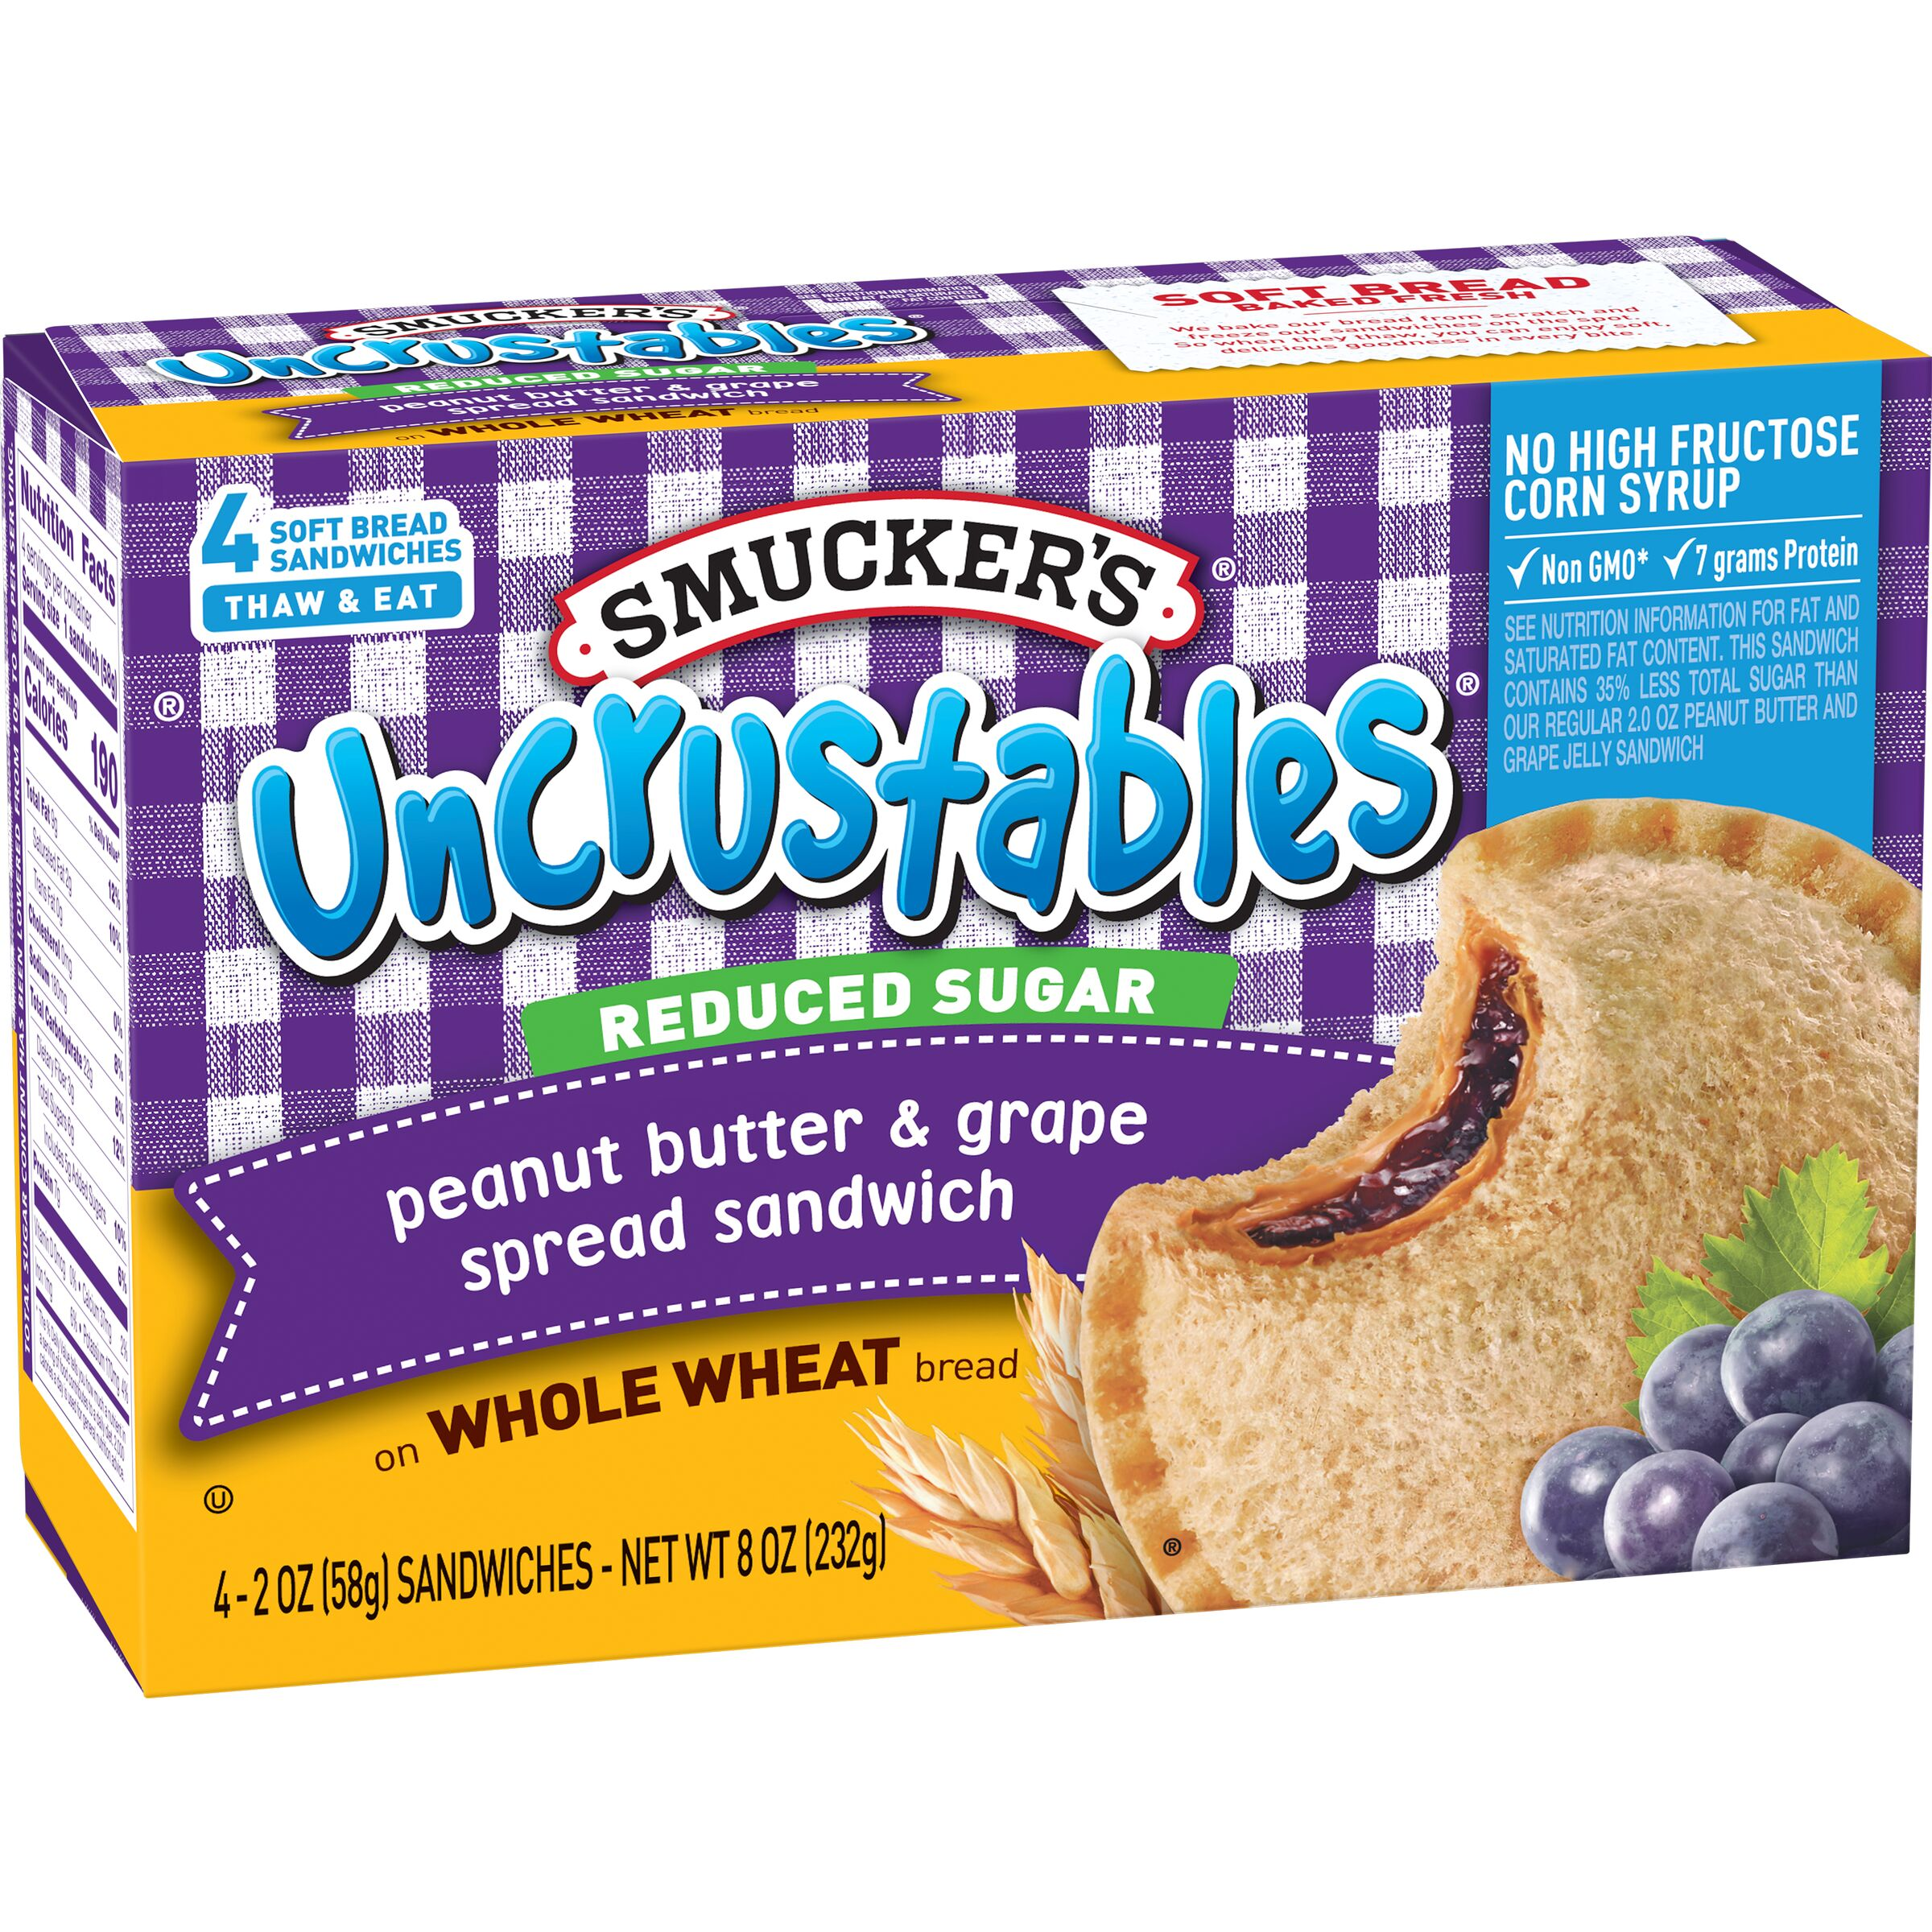 Smucker's Uncrustables Reduced Sugar Peanut Butter & Grape Spread Sandwich on Whole Wheat